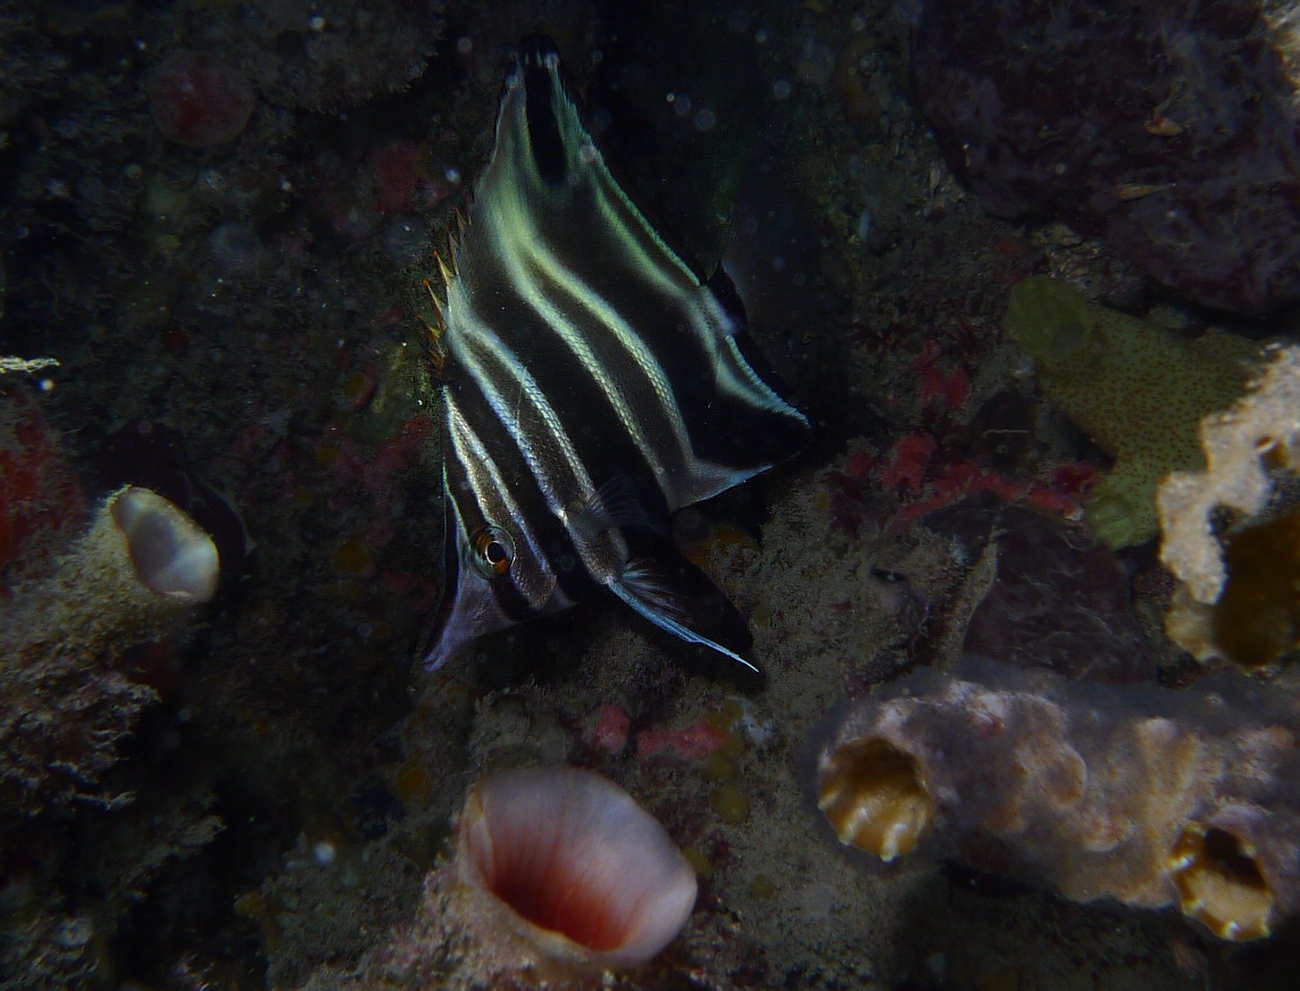 Night Dive: Woodman Point 18-06-2013 - Dievas Focal Woodman%20Point%20night%20dive%2018-06-2013%20mother-in-law%201